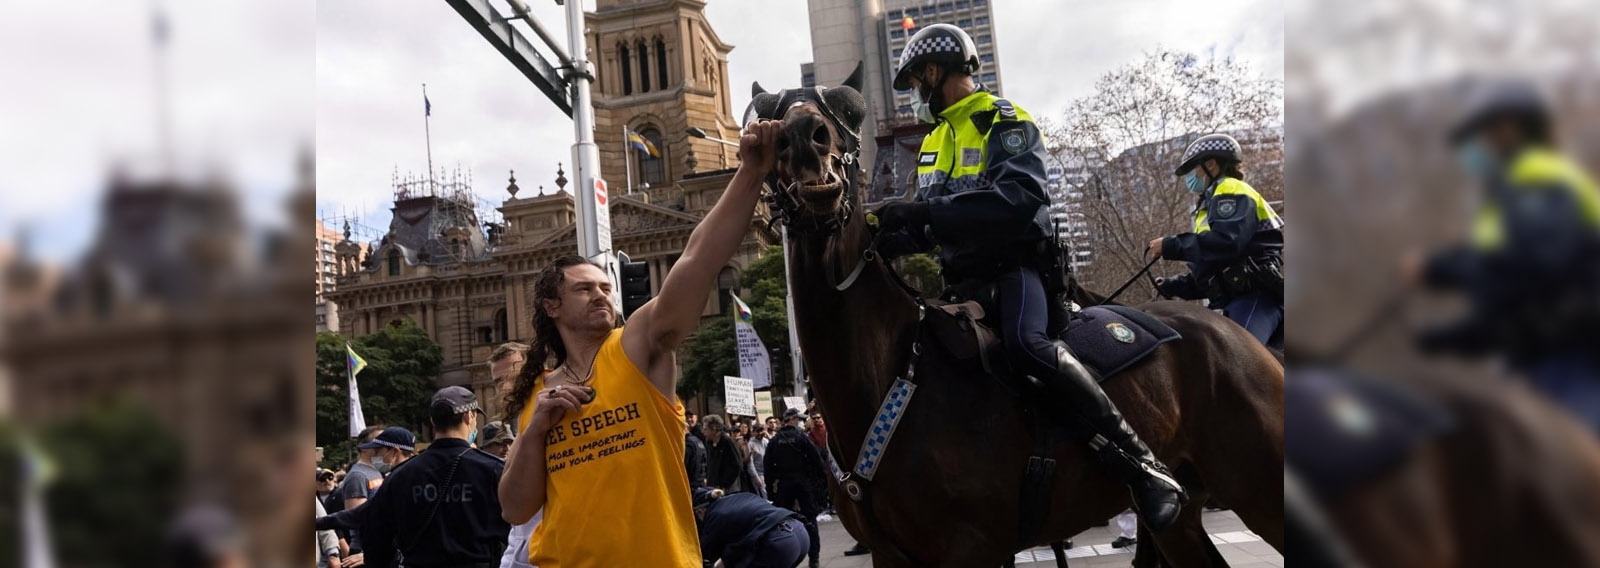 """WATCH: Police Accused of """"Fake News"""" After Video Emerges of Man """"Punching"""" Horse"""